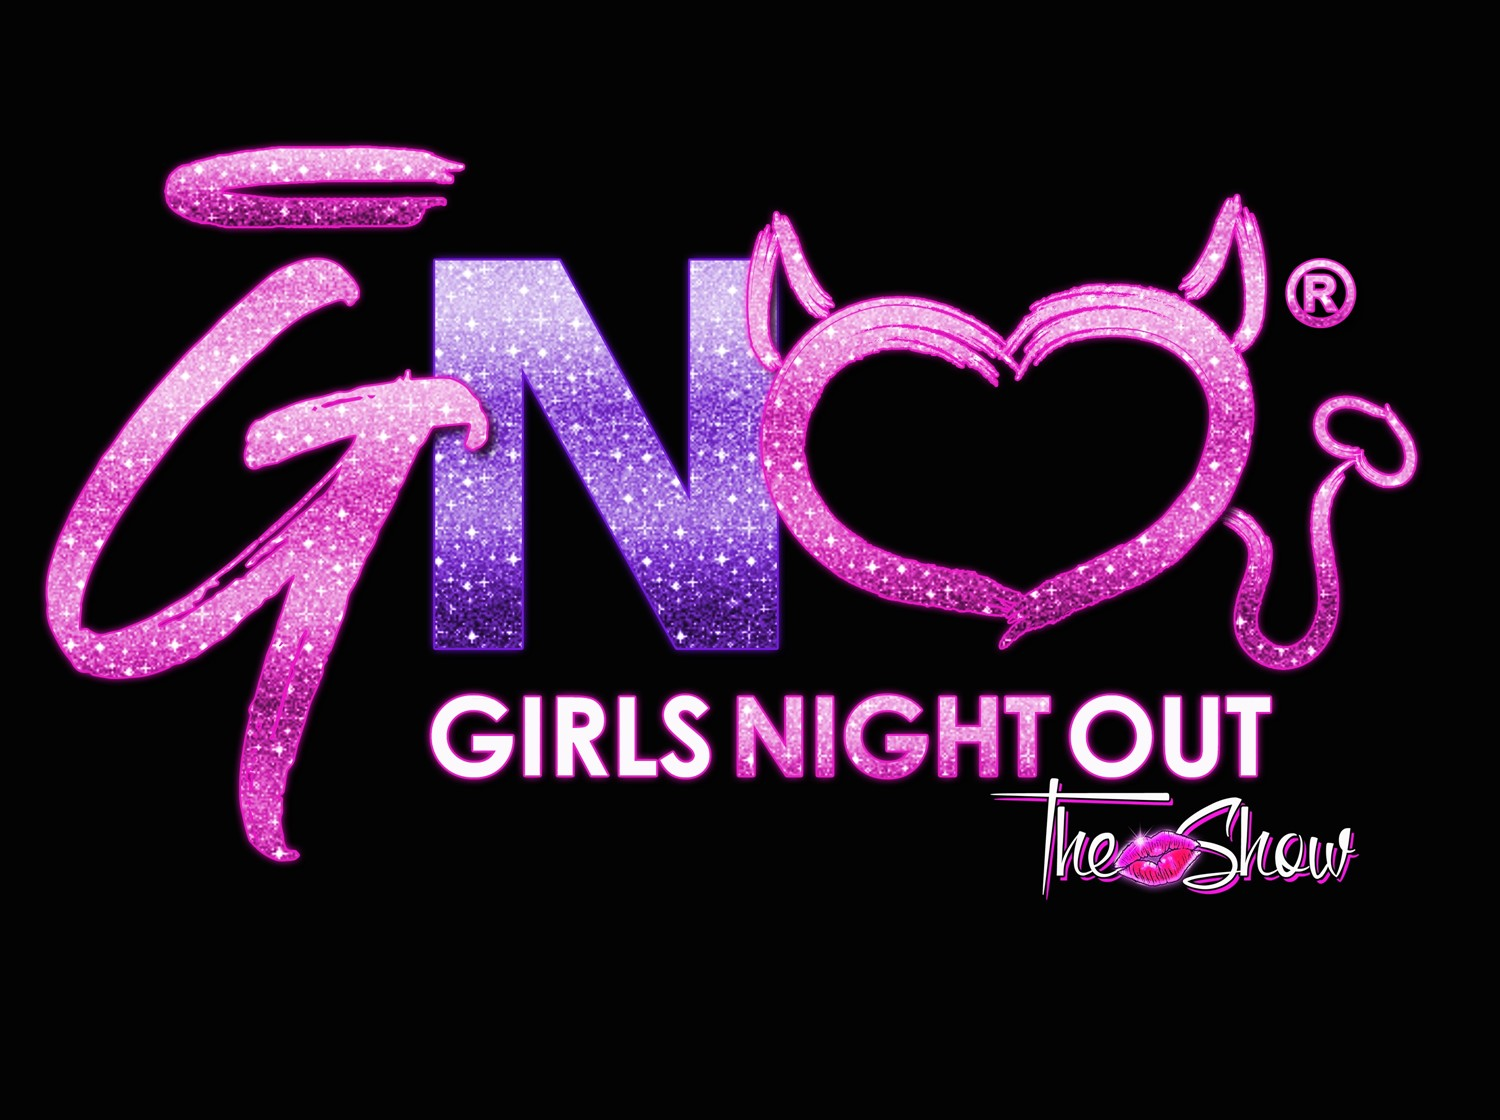 The Garage (21+) Tower City, PA on may. 20, 20:00@The Garage - Buy tickets and Get information on Girls Night Out the Show tickets.girlsnightouttheshow.com